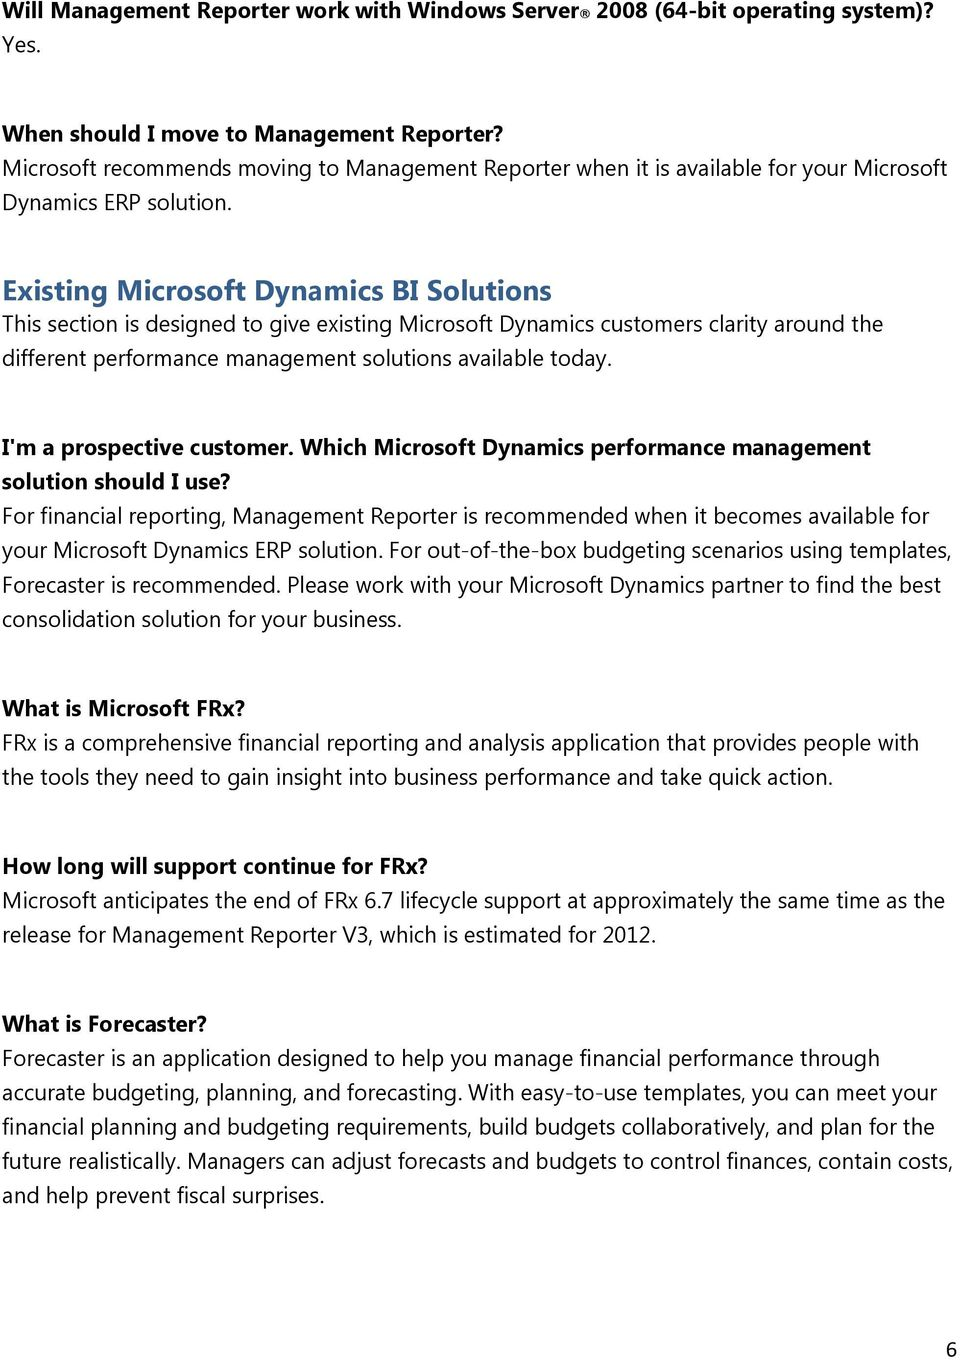 Existing Microsoft Dynamics BI Solutions This section is designed to give existing Microsoft Dynamics customers clarity around the different performance management solutions available today.